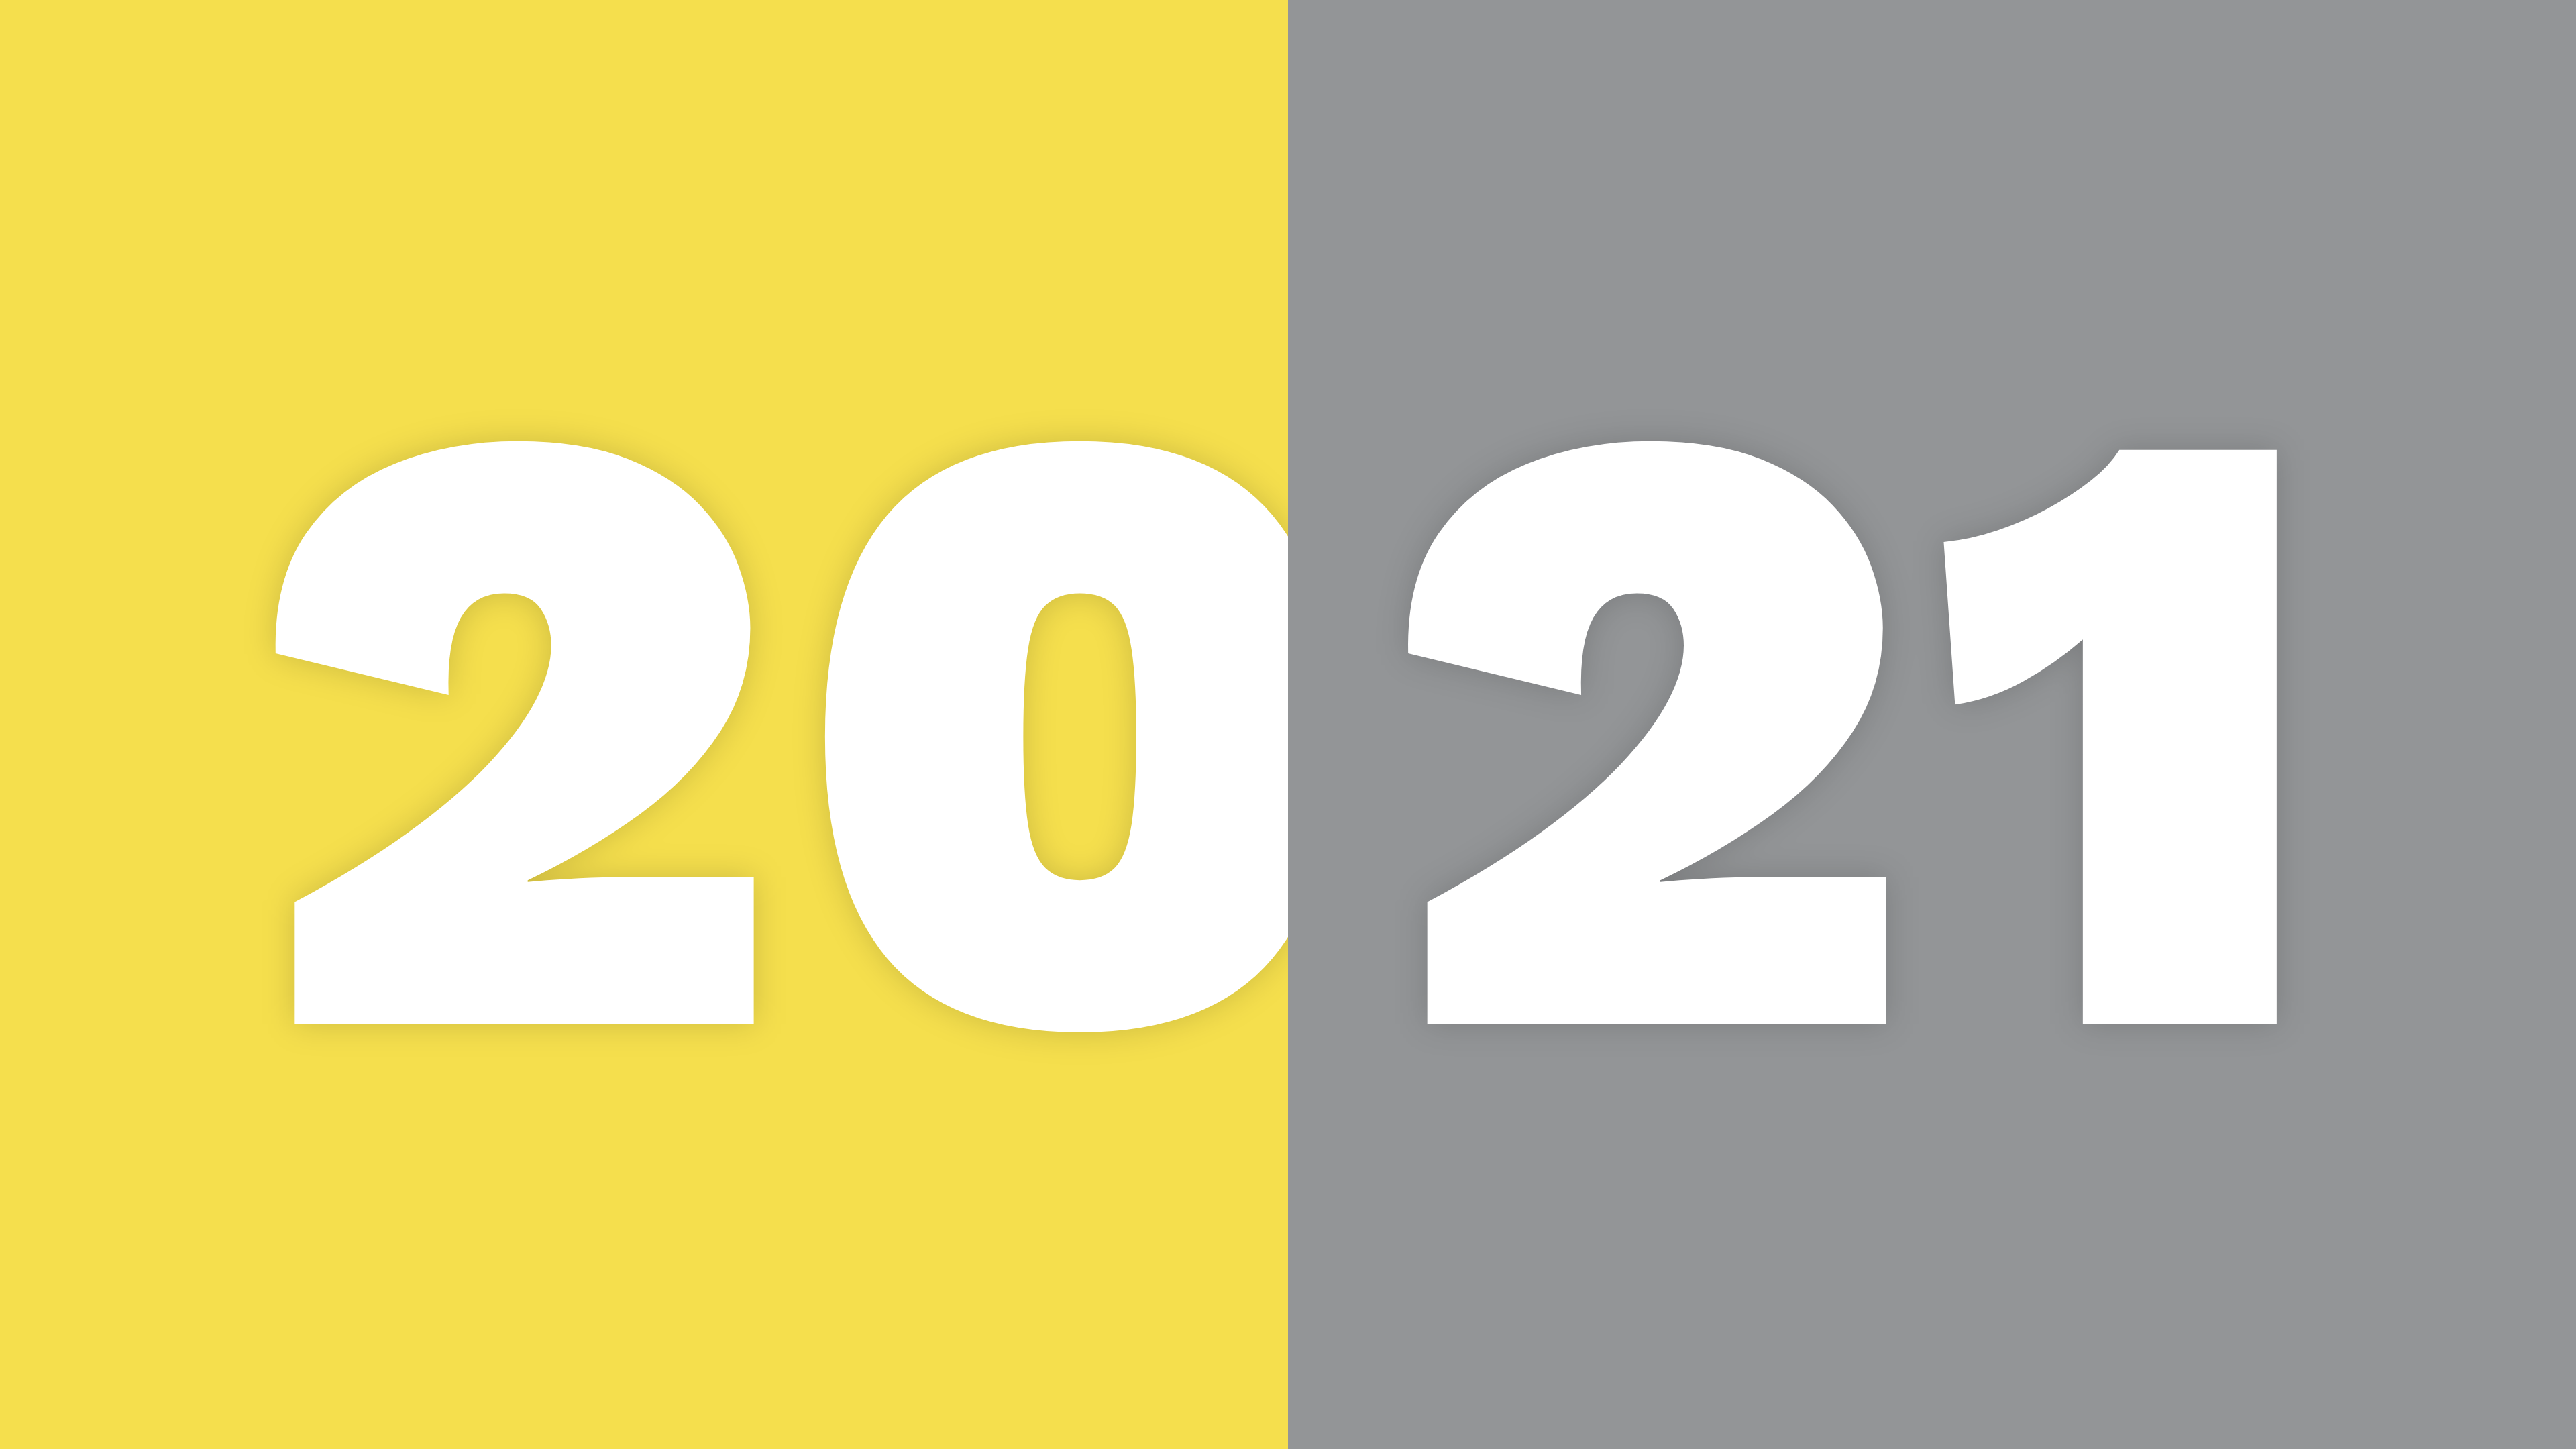 Pantone Color of the Year for 2021